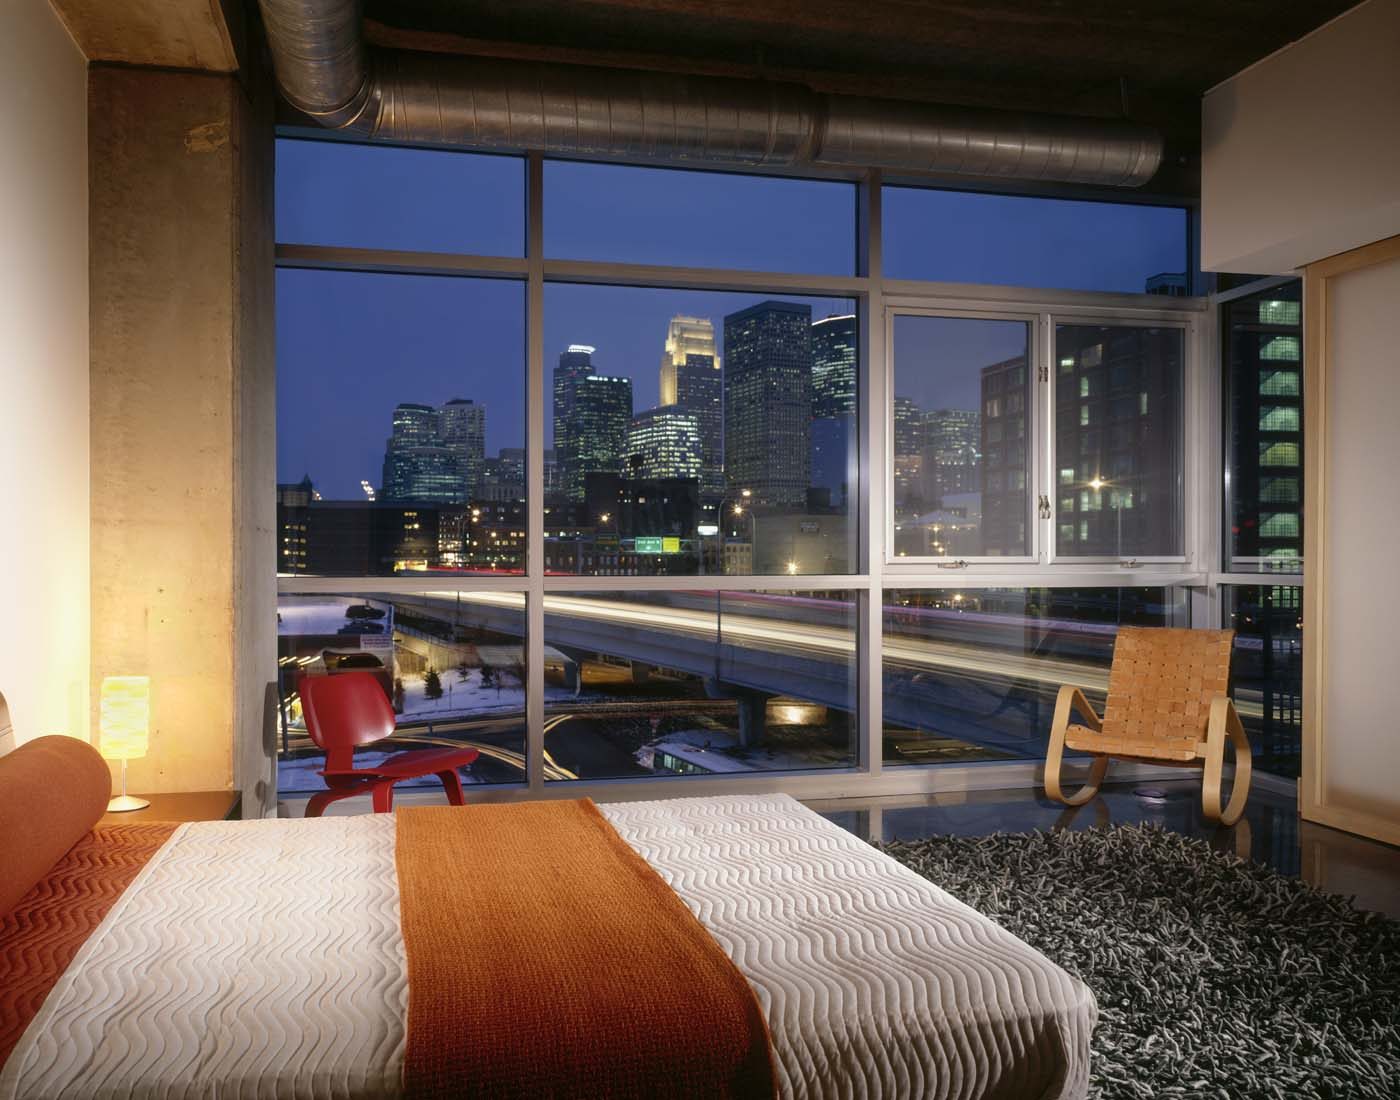 Loft Bedroom At Night With View Of Downtown Buildings